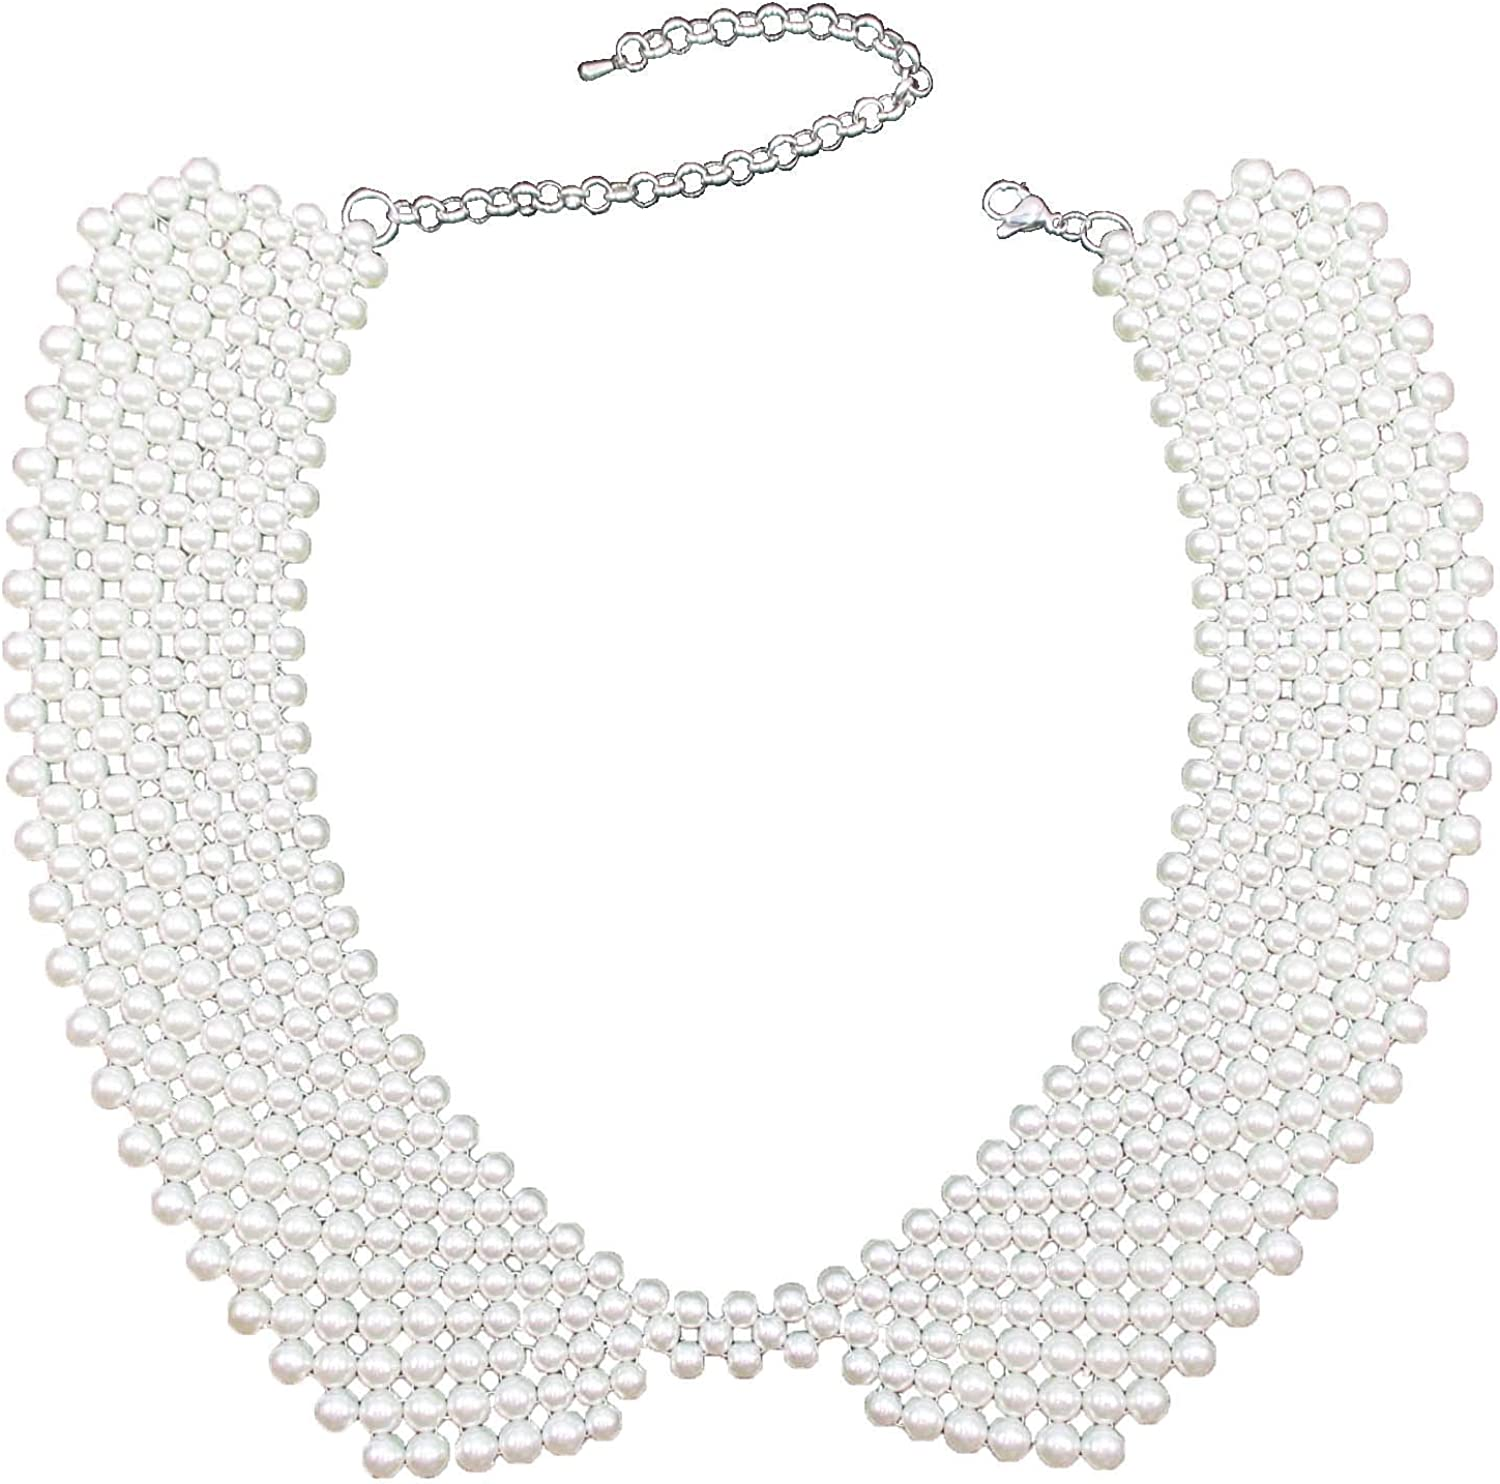 Trimscraft Collar Necklace Simulated Pearls Beads Bib Statement Necklace Detachable False Collar Lady Accessories